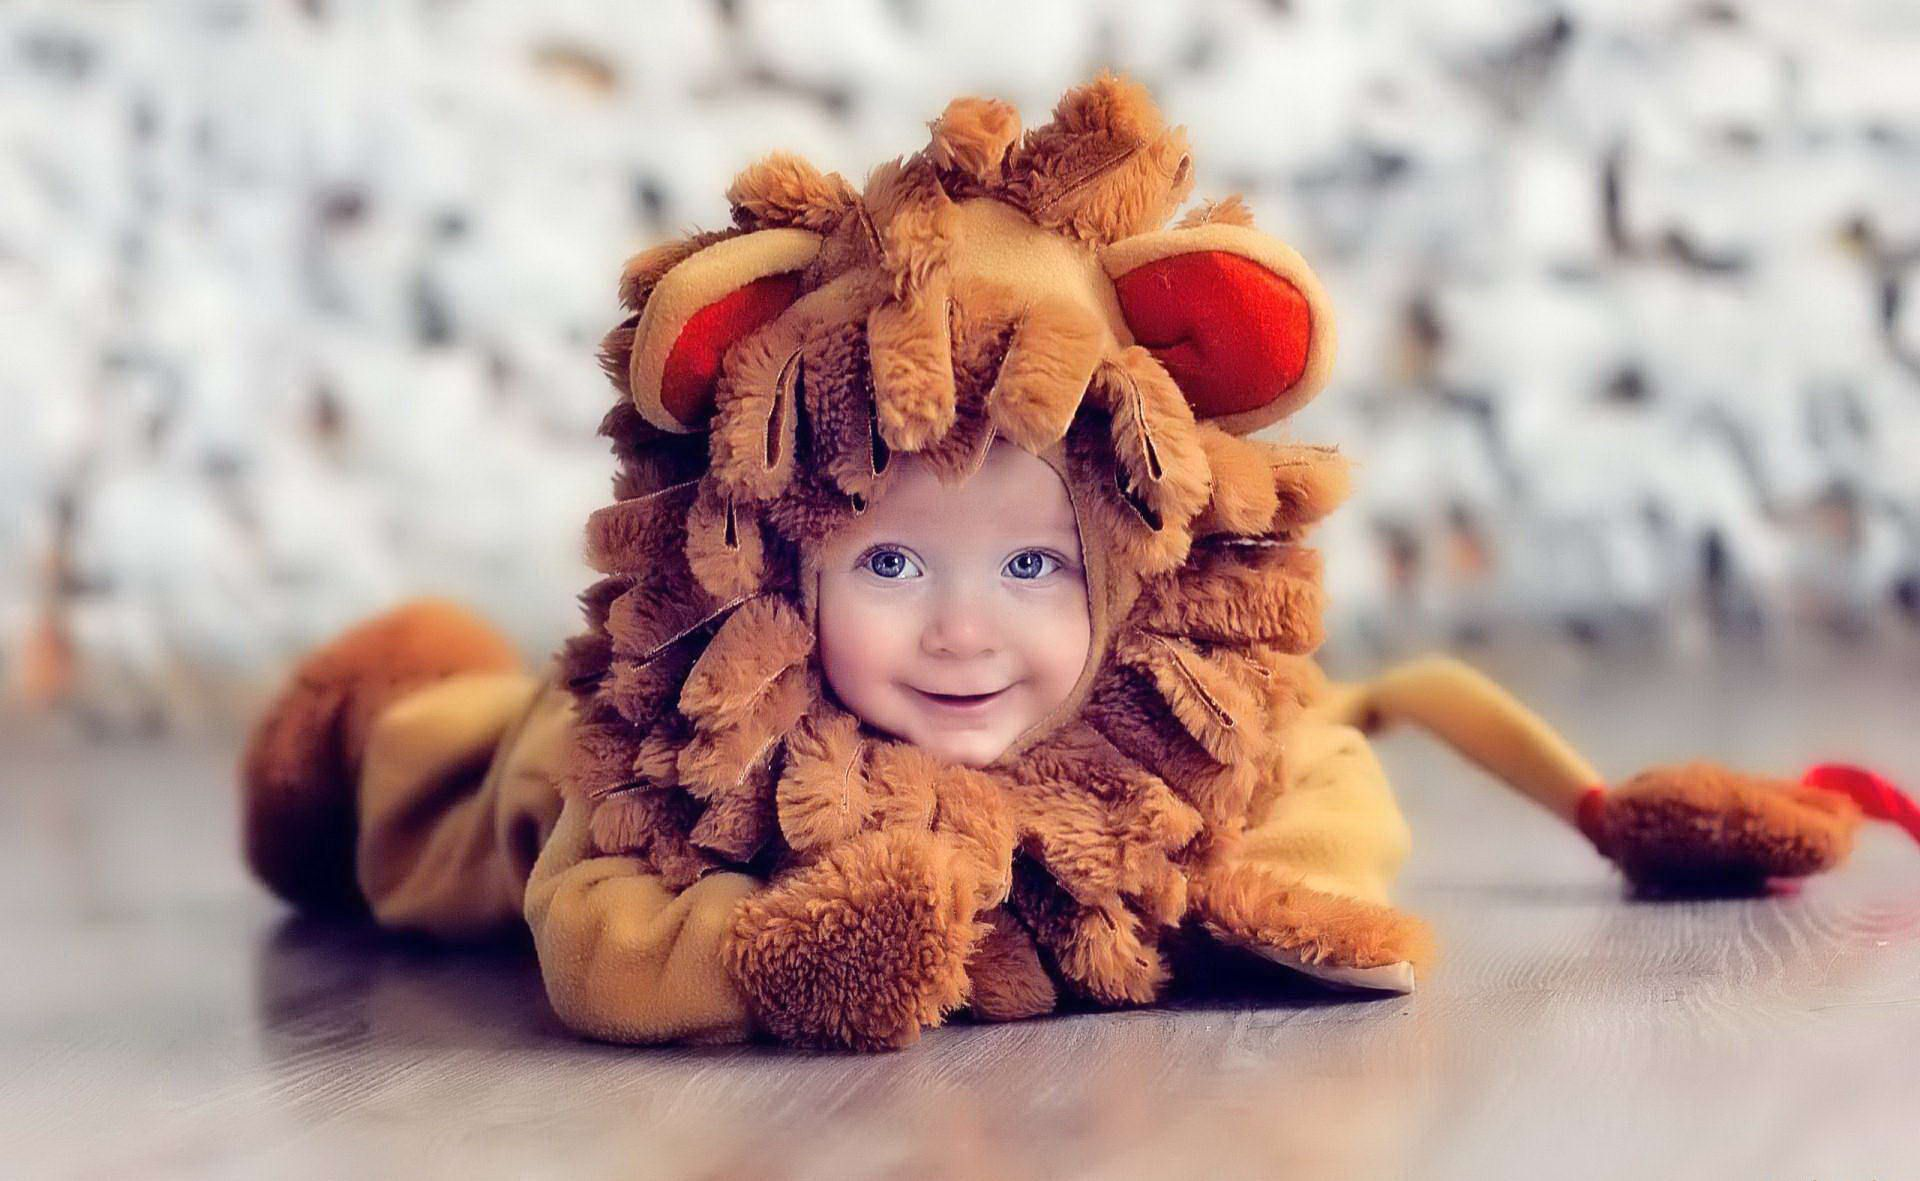 Cute Baby And Lion costume Photo  sc 1 st  Pinterest & Cute Baby And Lion costume Photo | Babies | Pinterest | Baby ...